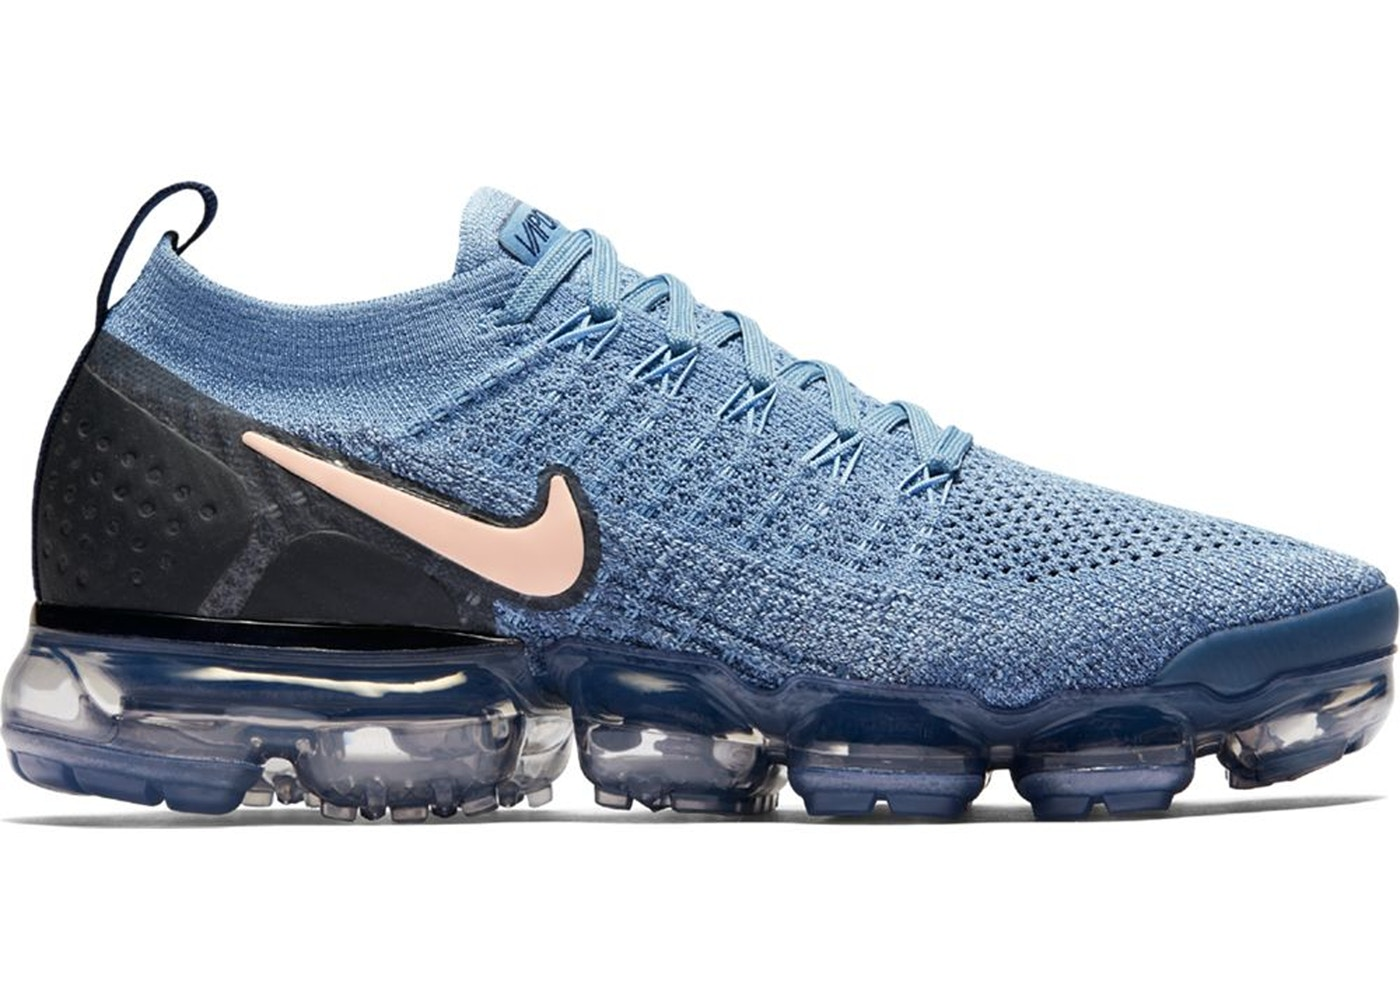 Where To Buy Wholesale Cheap Nike Air VaporMax 2.0 Work Blue Diffused Blue-Blackened Blue-Crimson Tint 942843-401 - www.wholesaleflyknit.com